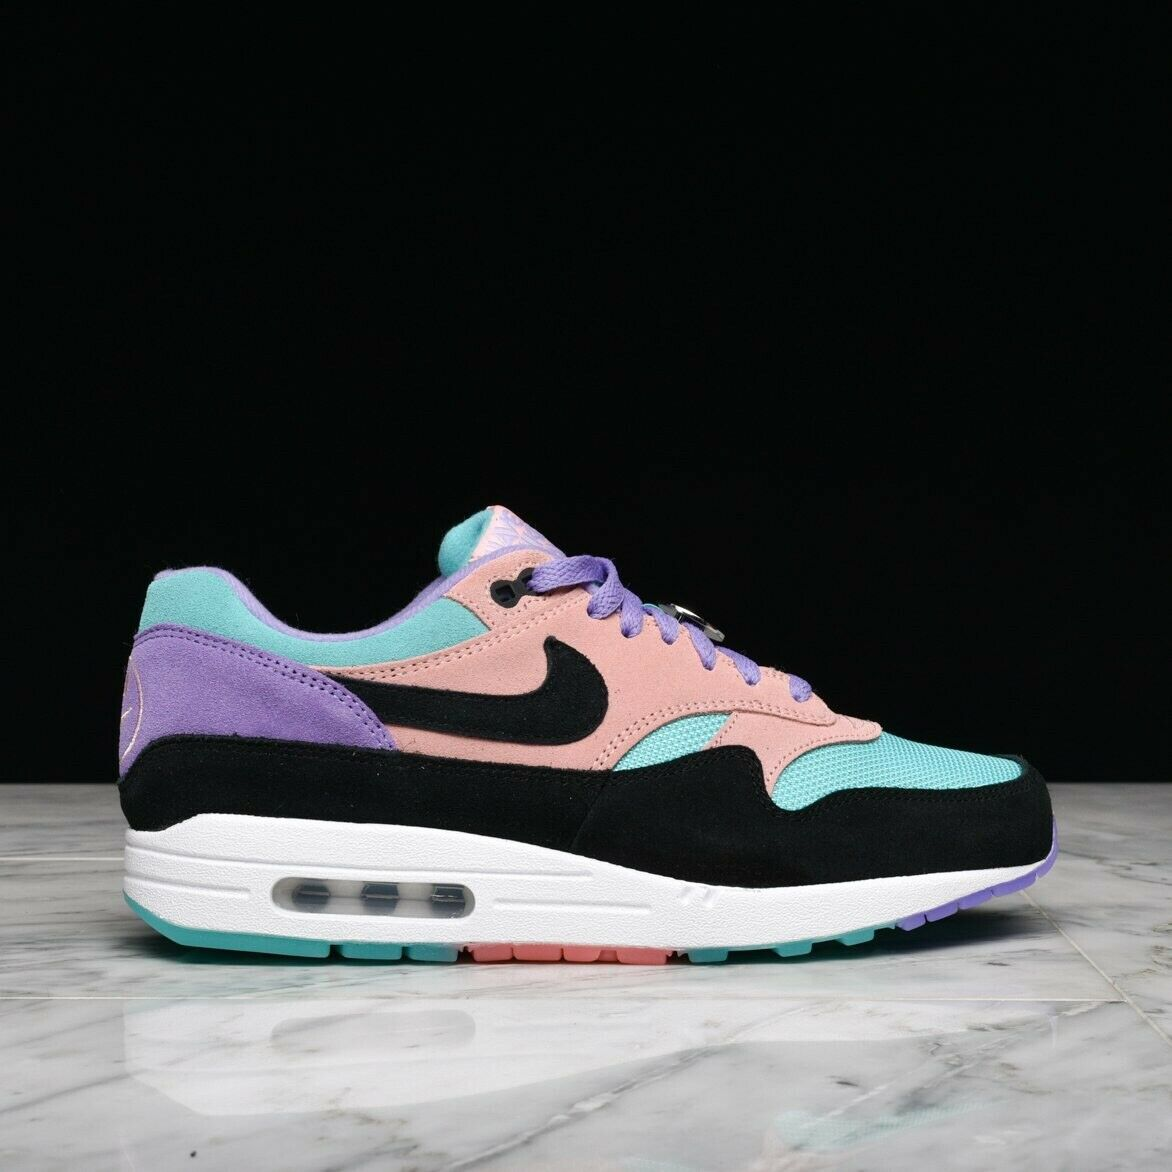 Nike Air Max 1 Have A Nike Day Purple Coral Sz 9.5 BQ8929-500 atmos patta parra